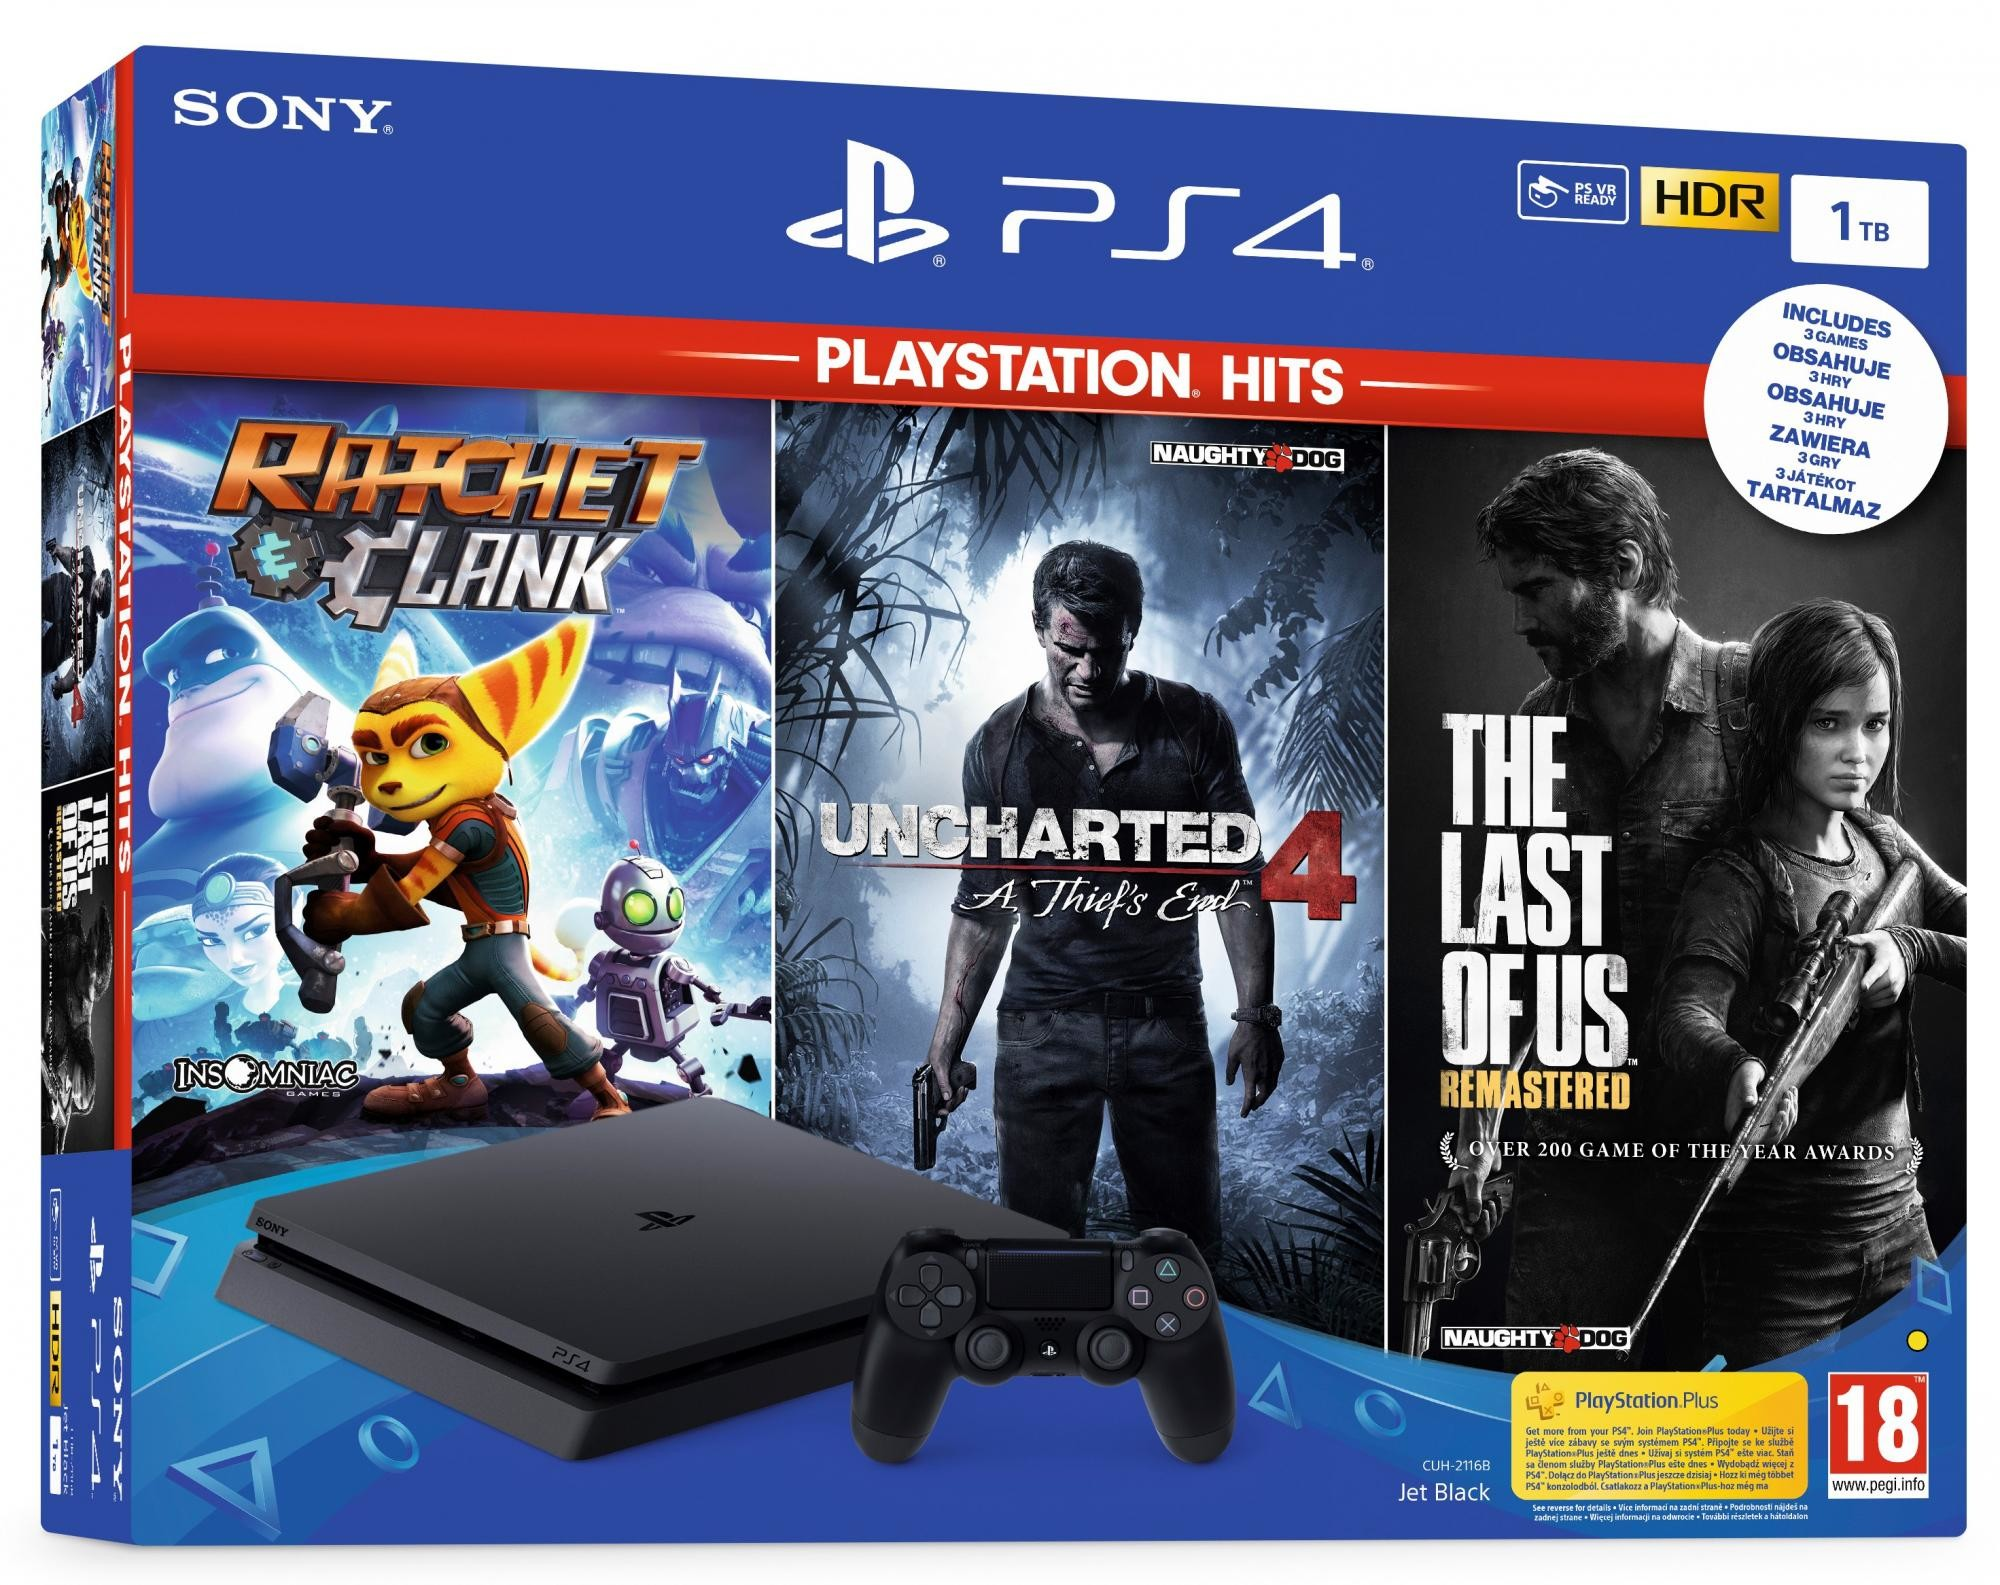 Sony Playstation 4 Slim 1TB + Uncharted 4 + The Last of Us + Ratchet & Clank